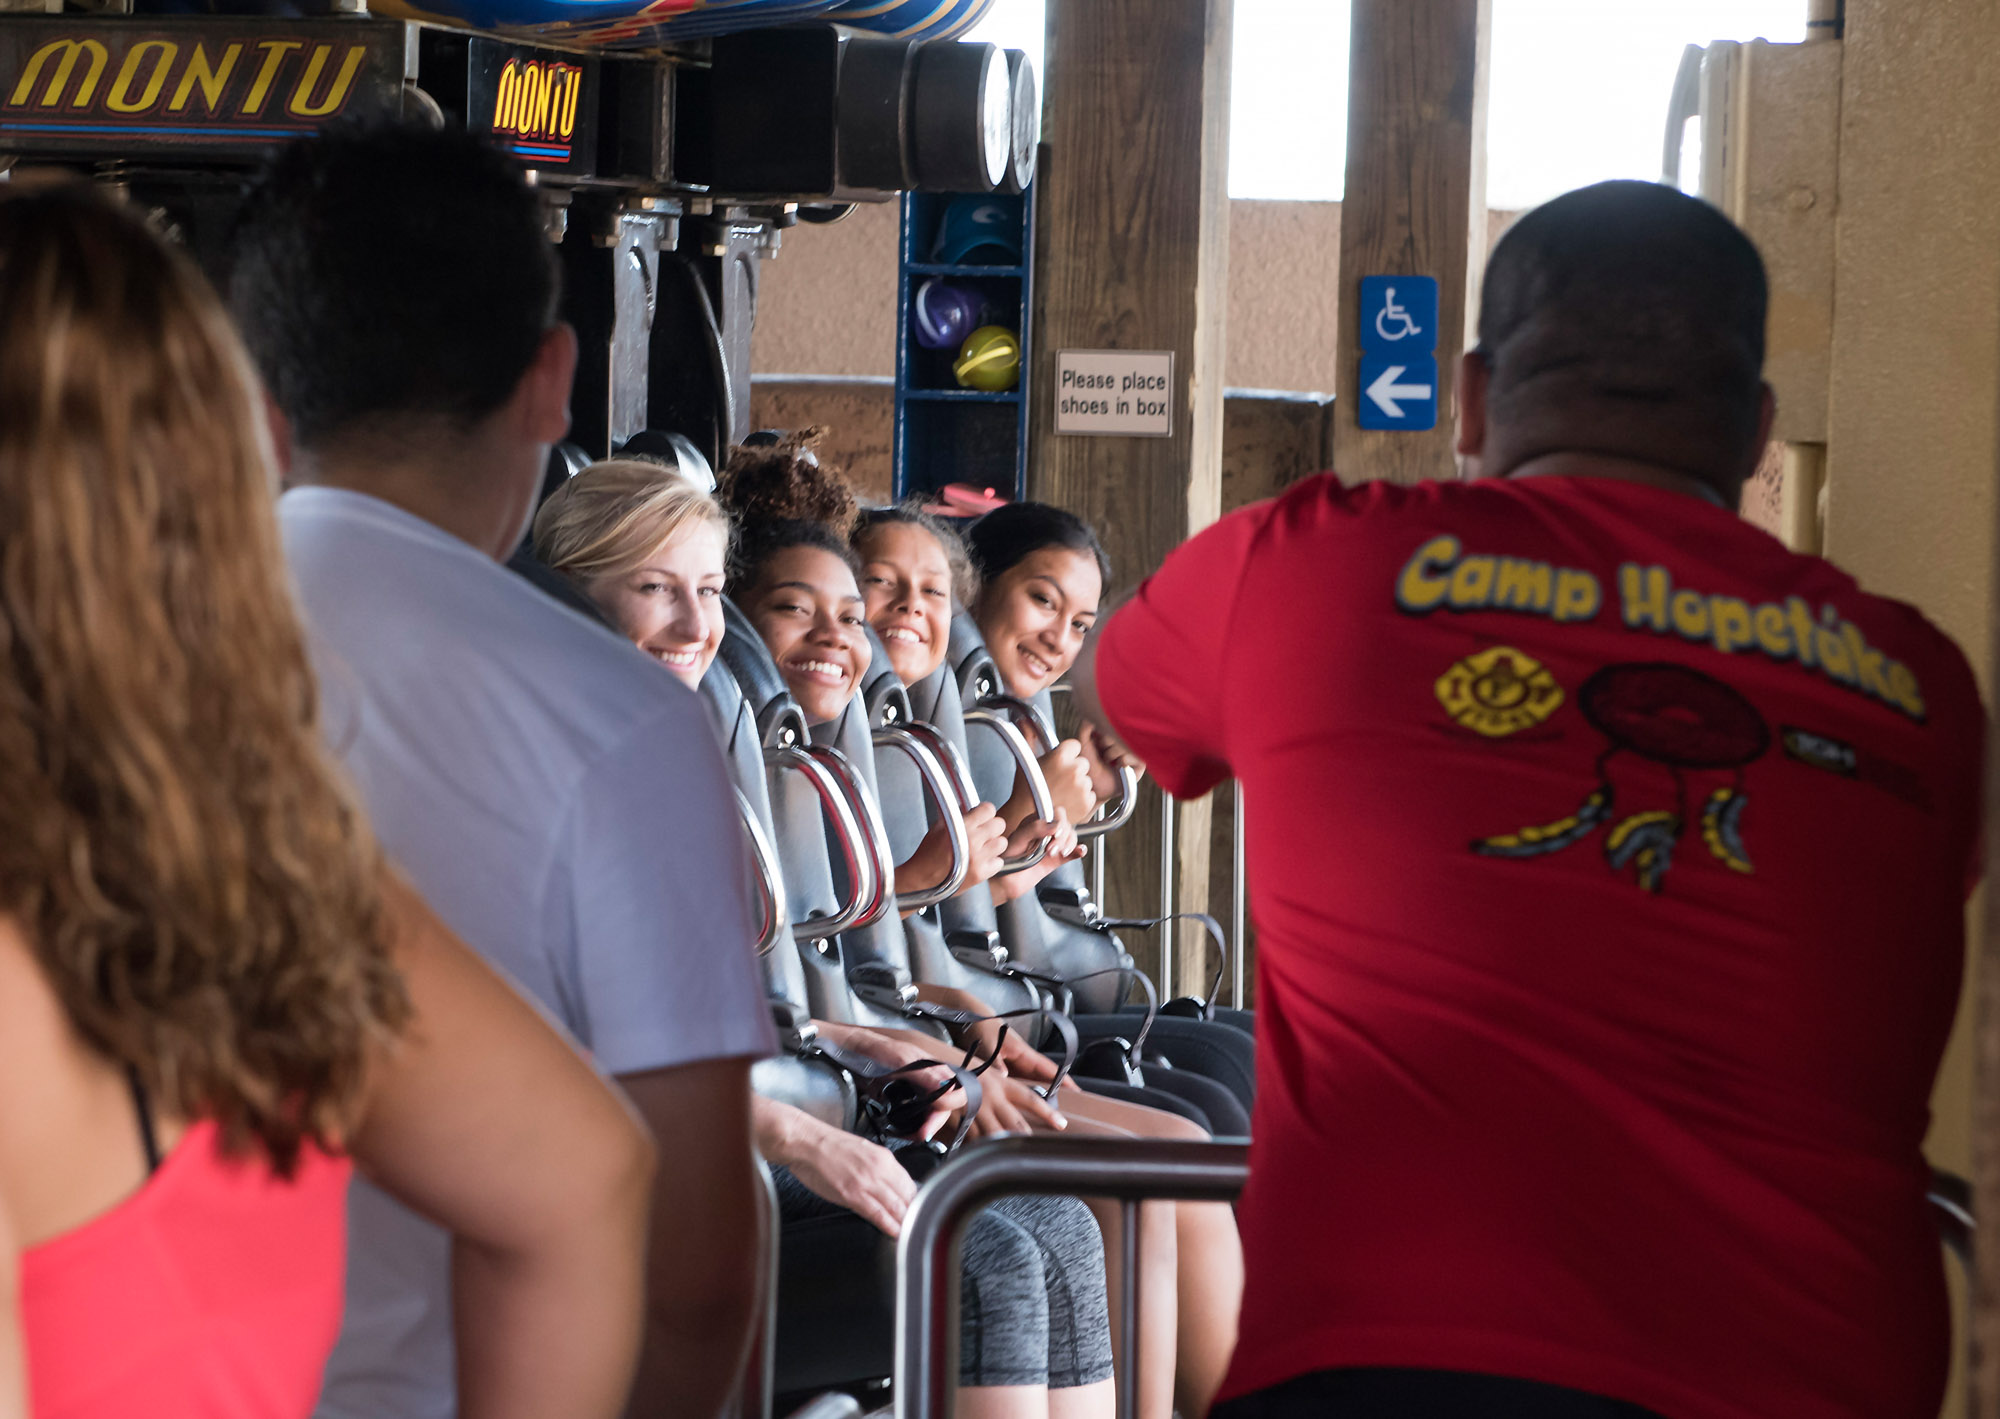 Group of girls on Montu at Busch Gardens with Camp Hopetake